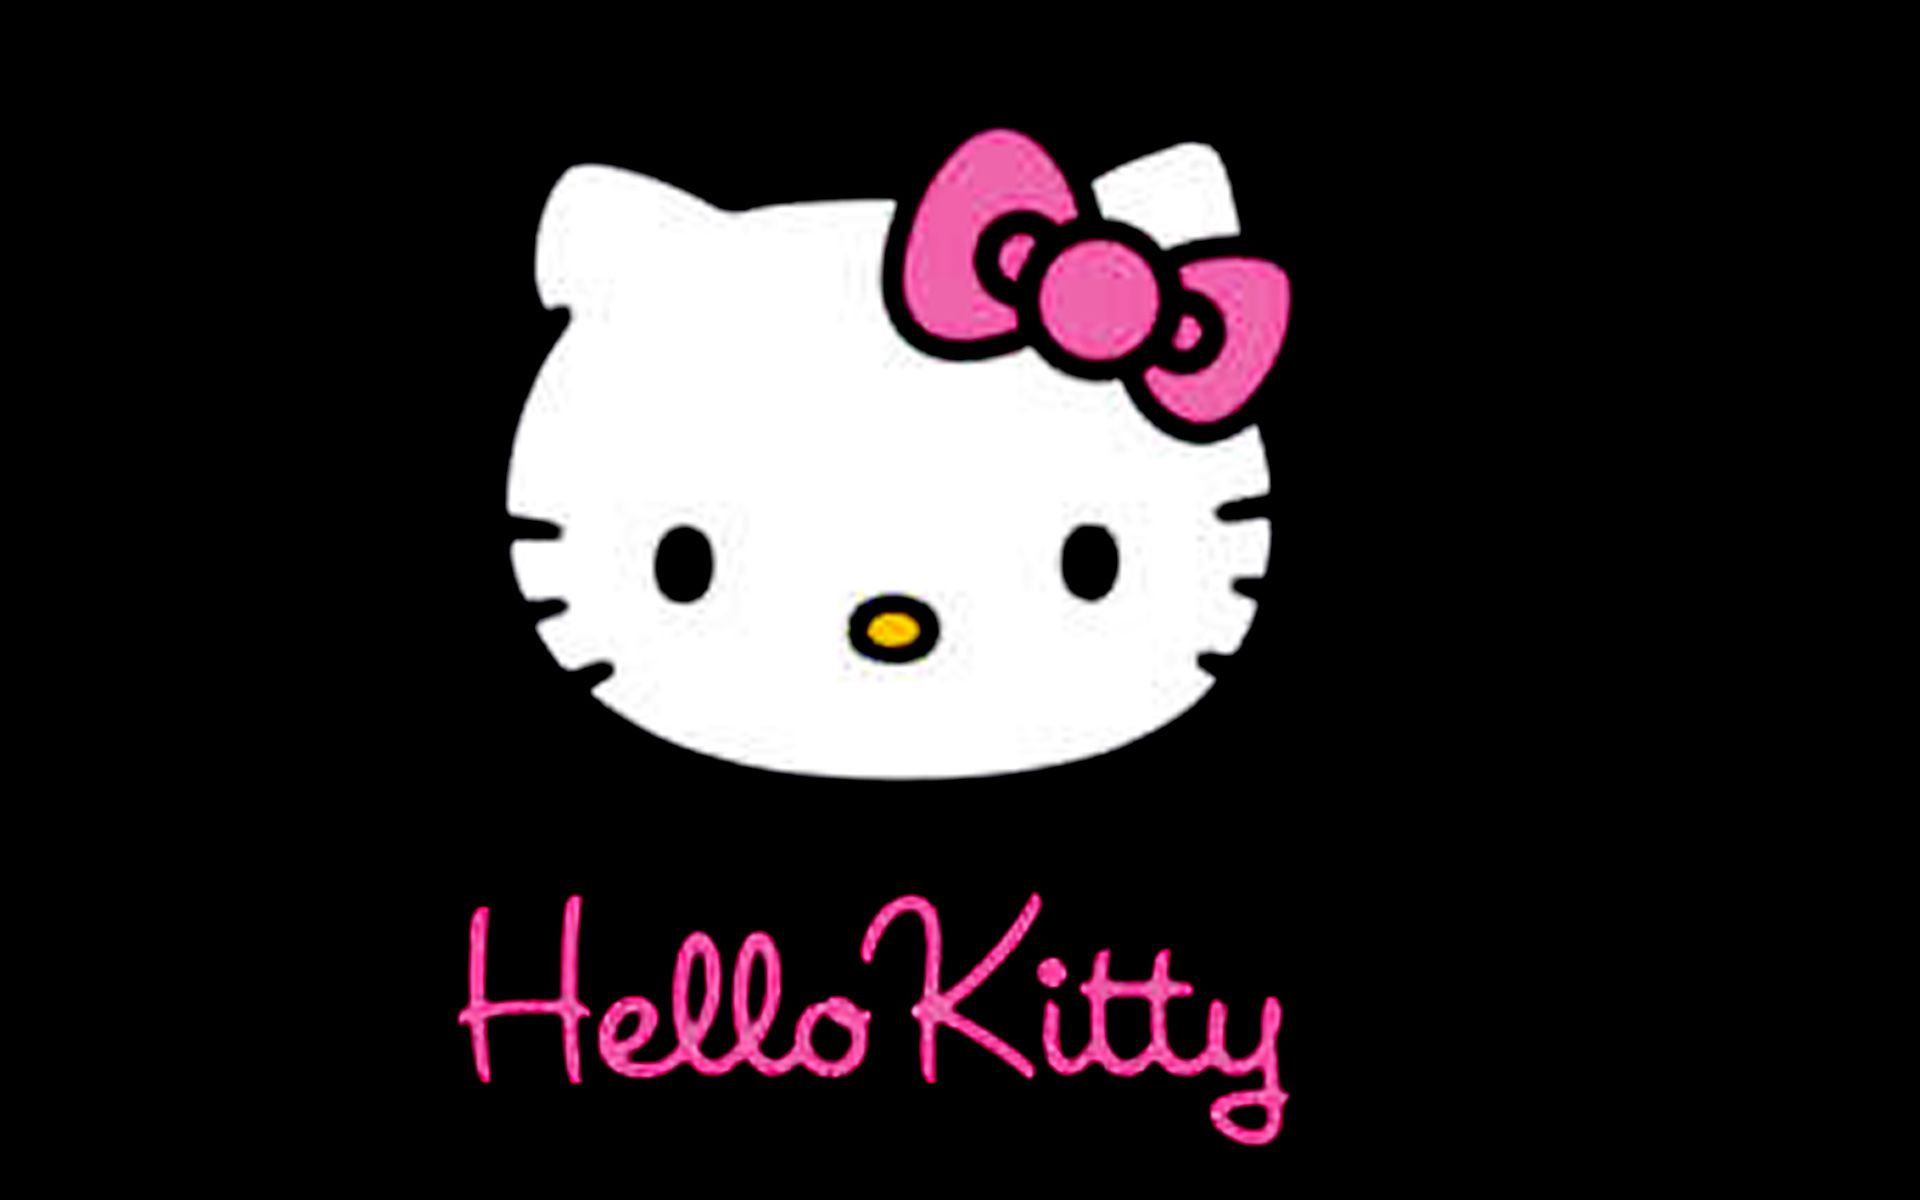 Wallpaper Hello Kitty Black